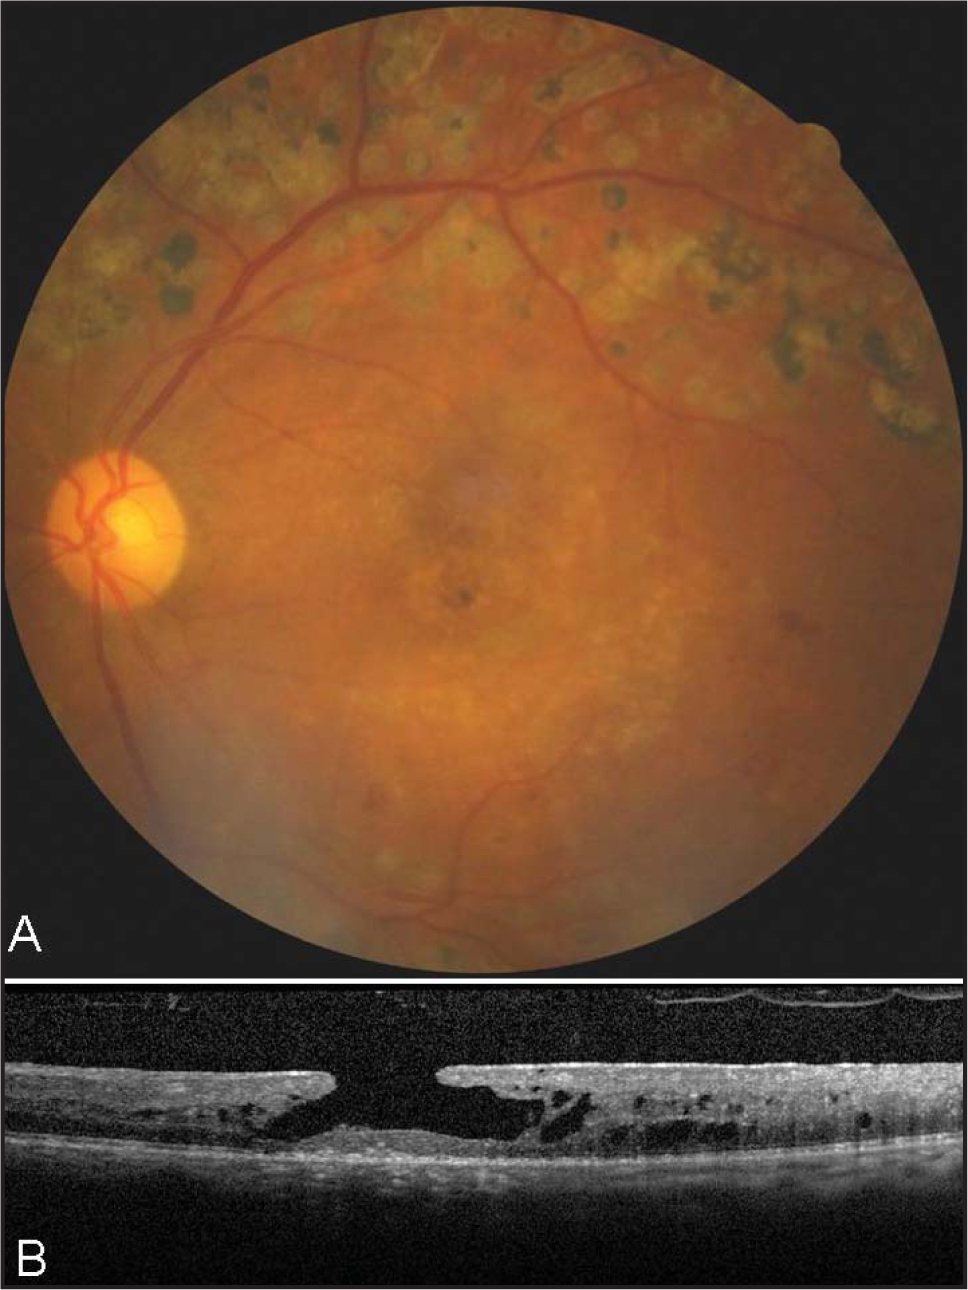 (A) Fundus photography showing the appearance of a macular hole. (B) Optical coherence tomography scan demonstrating a lamellar macular hole.